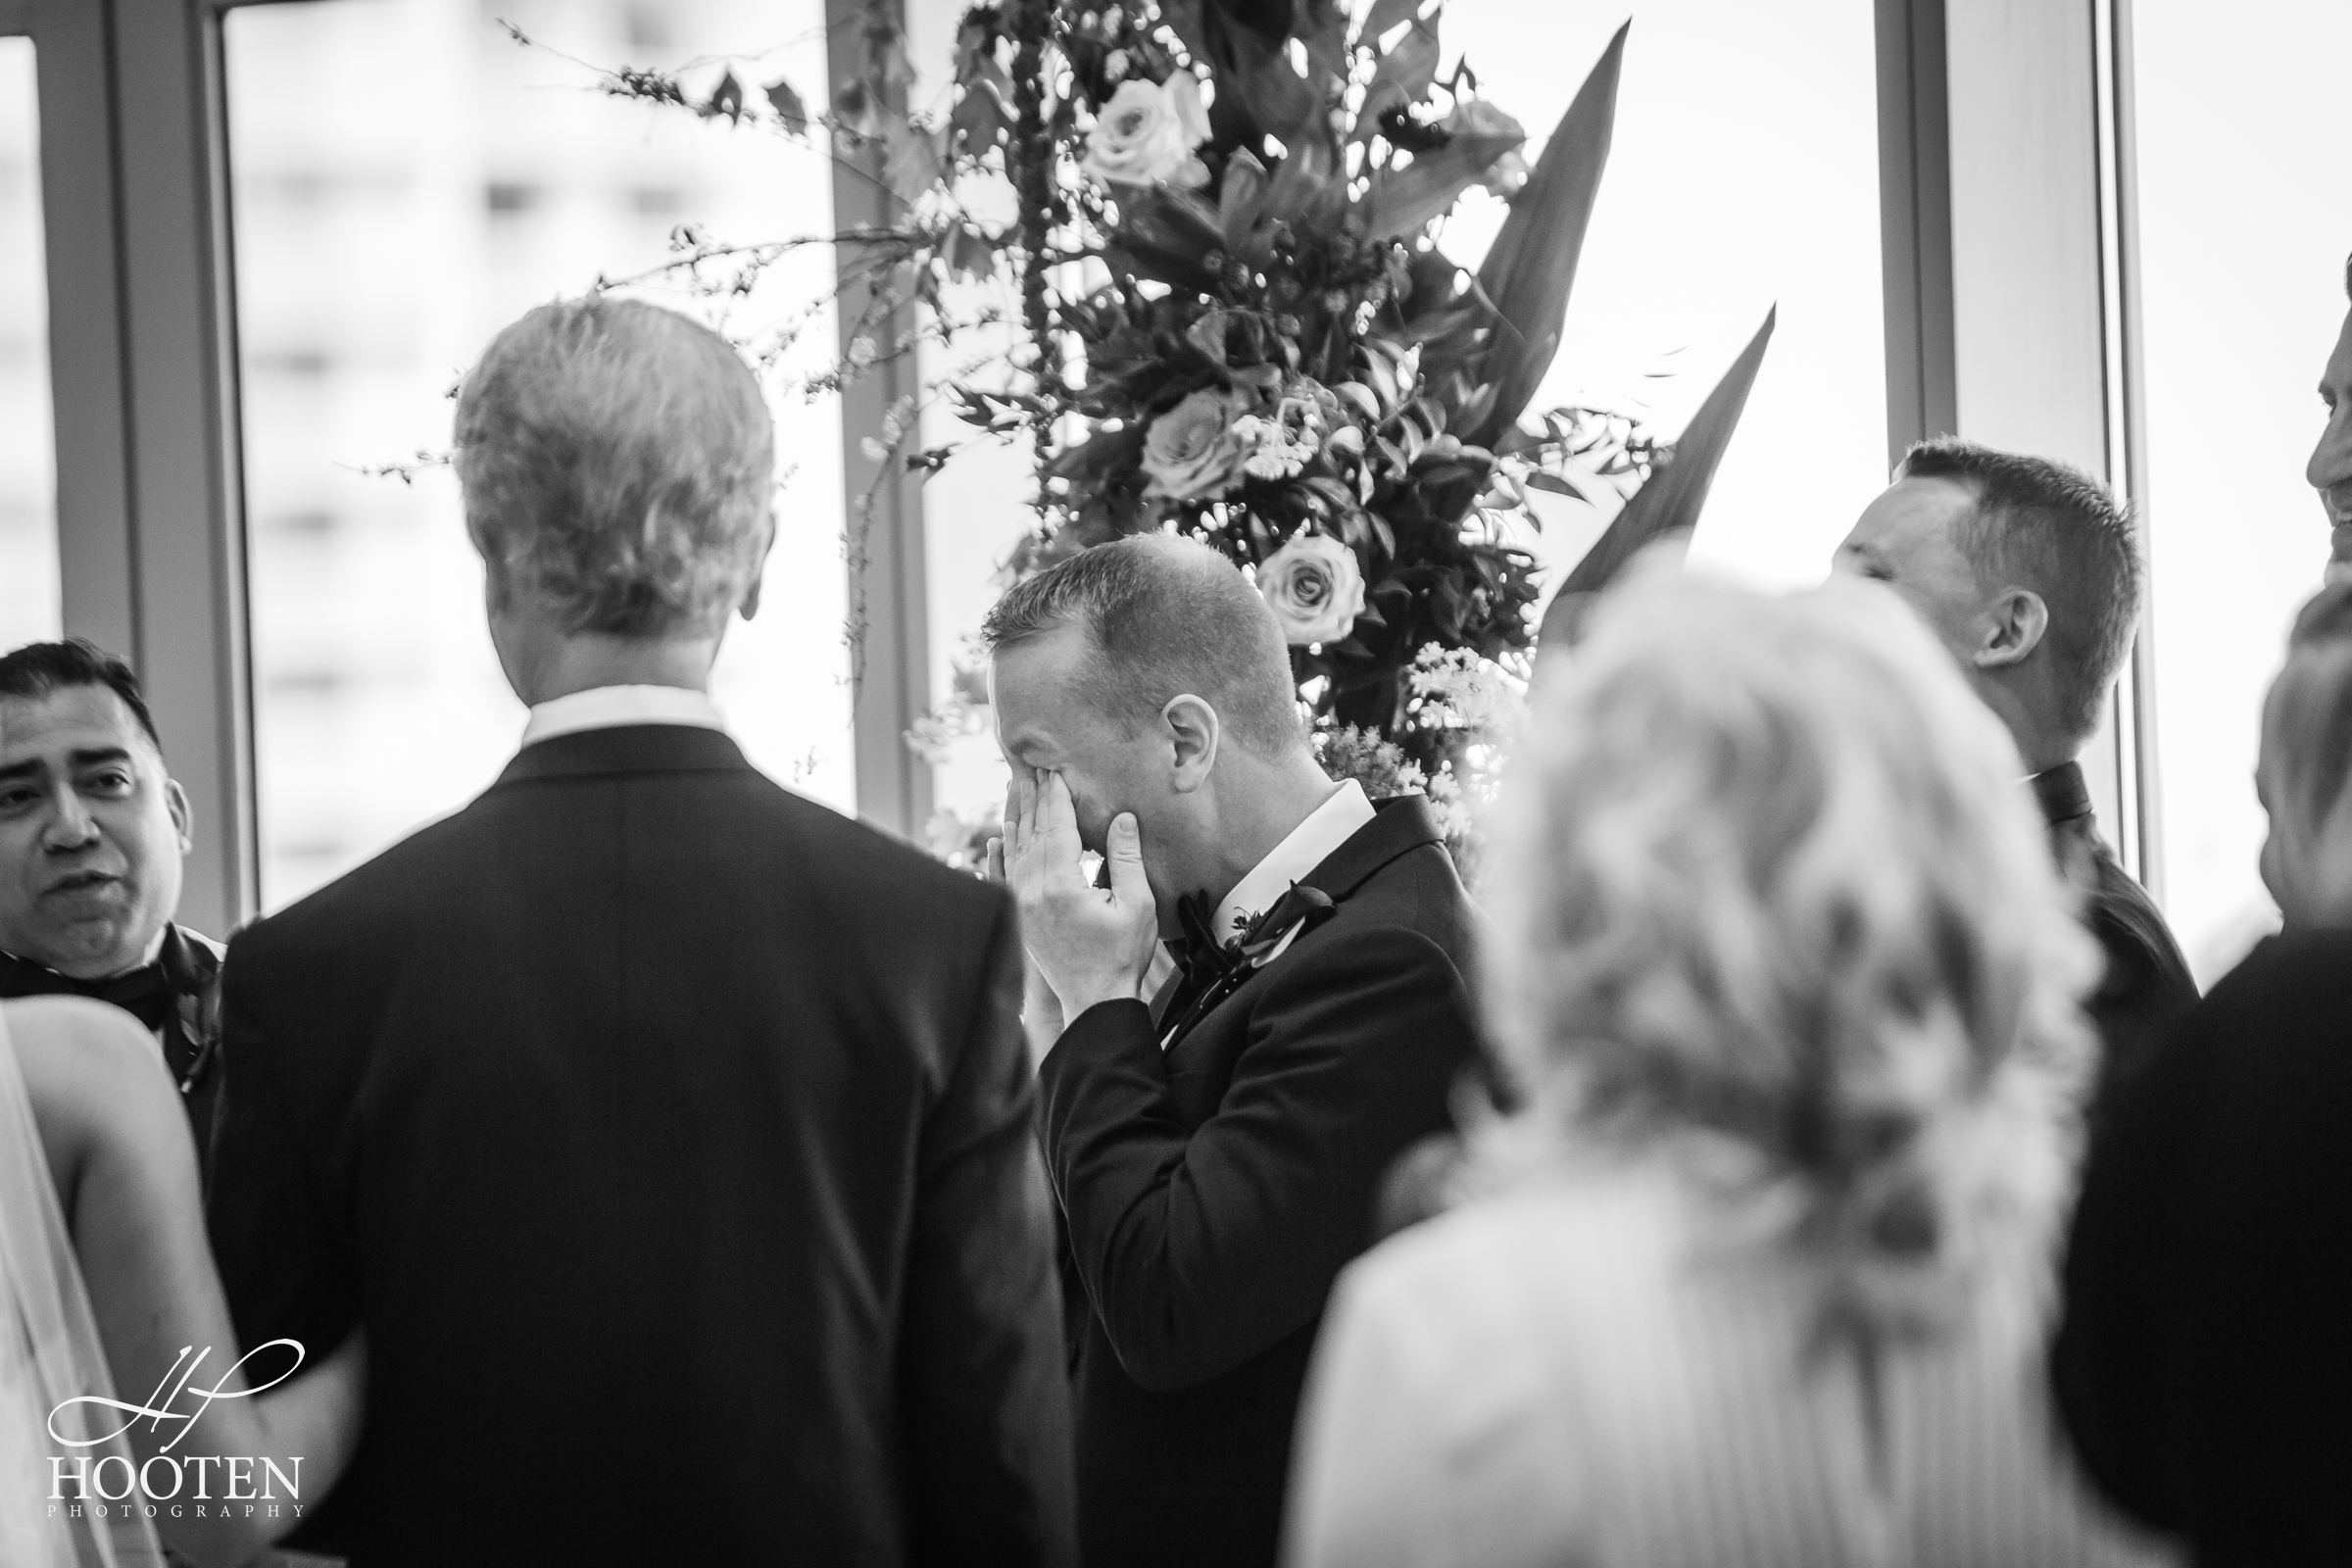 050.Conrad-Miami-Hotel-Wedding-Hooten-Photography.jpg